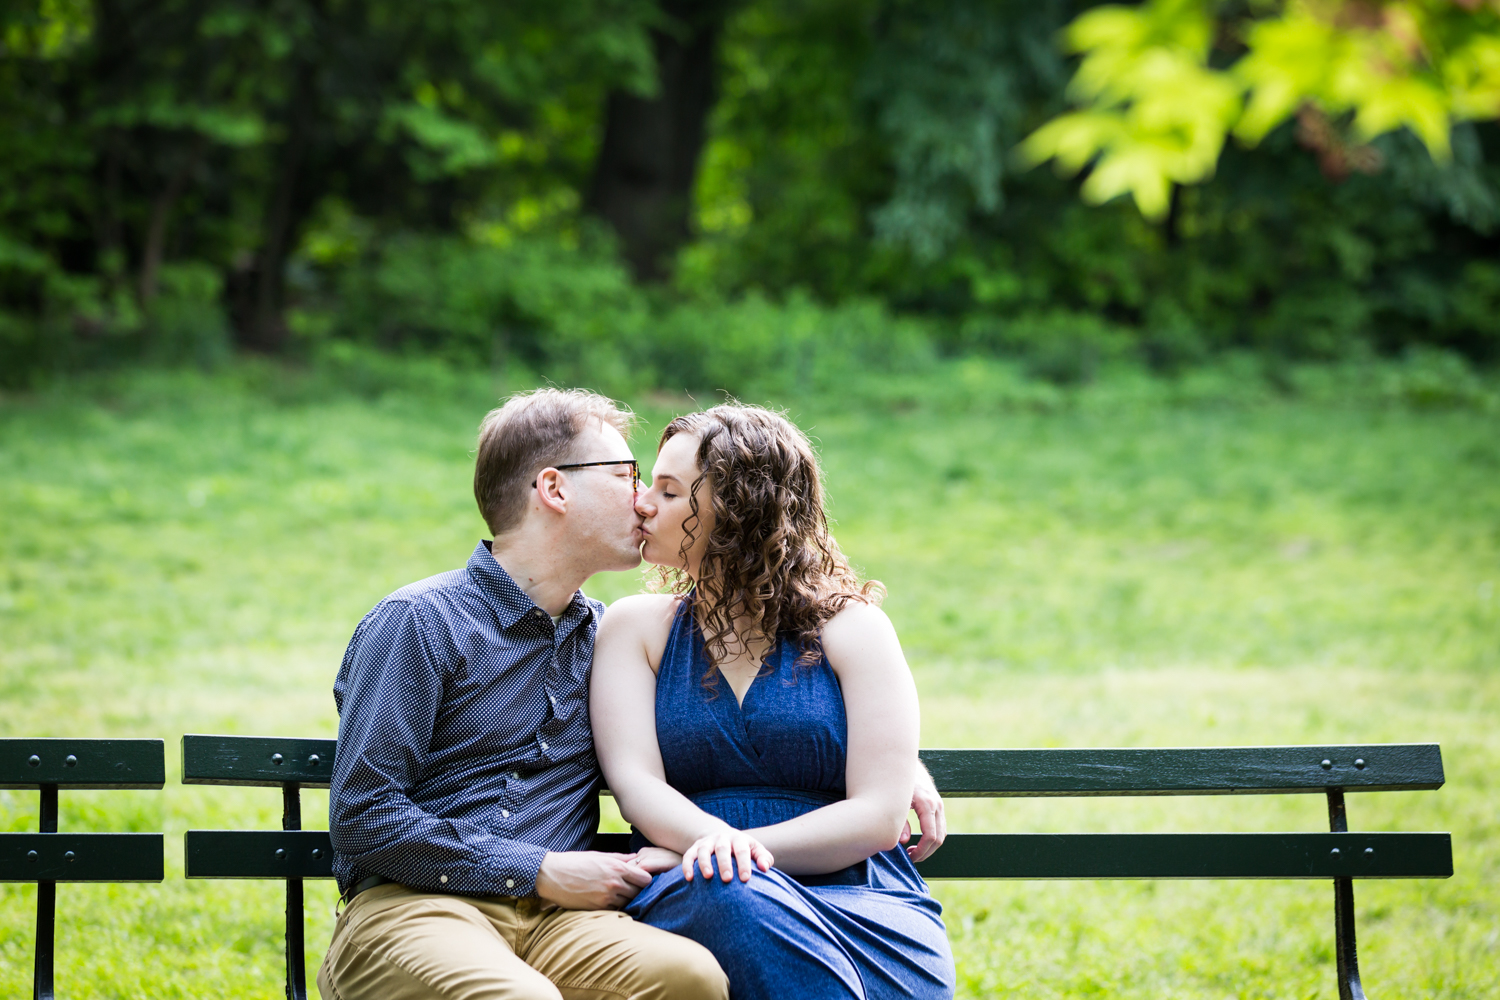 Man and woman kissing on bench in Central Park